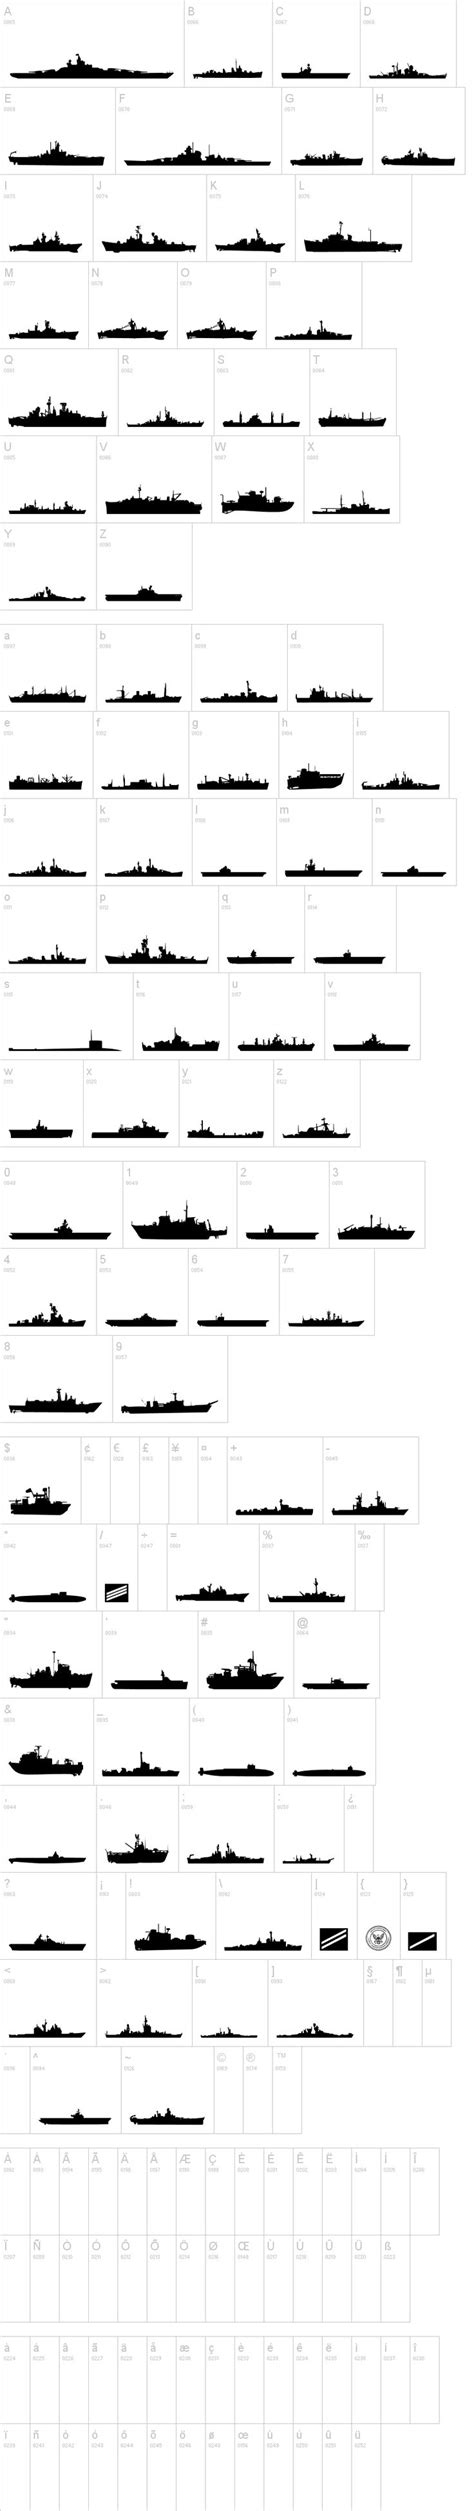 dafont chinese 17 best images about u s navy ship numbers on pinterest